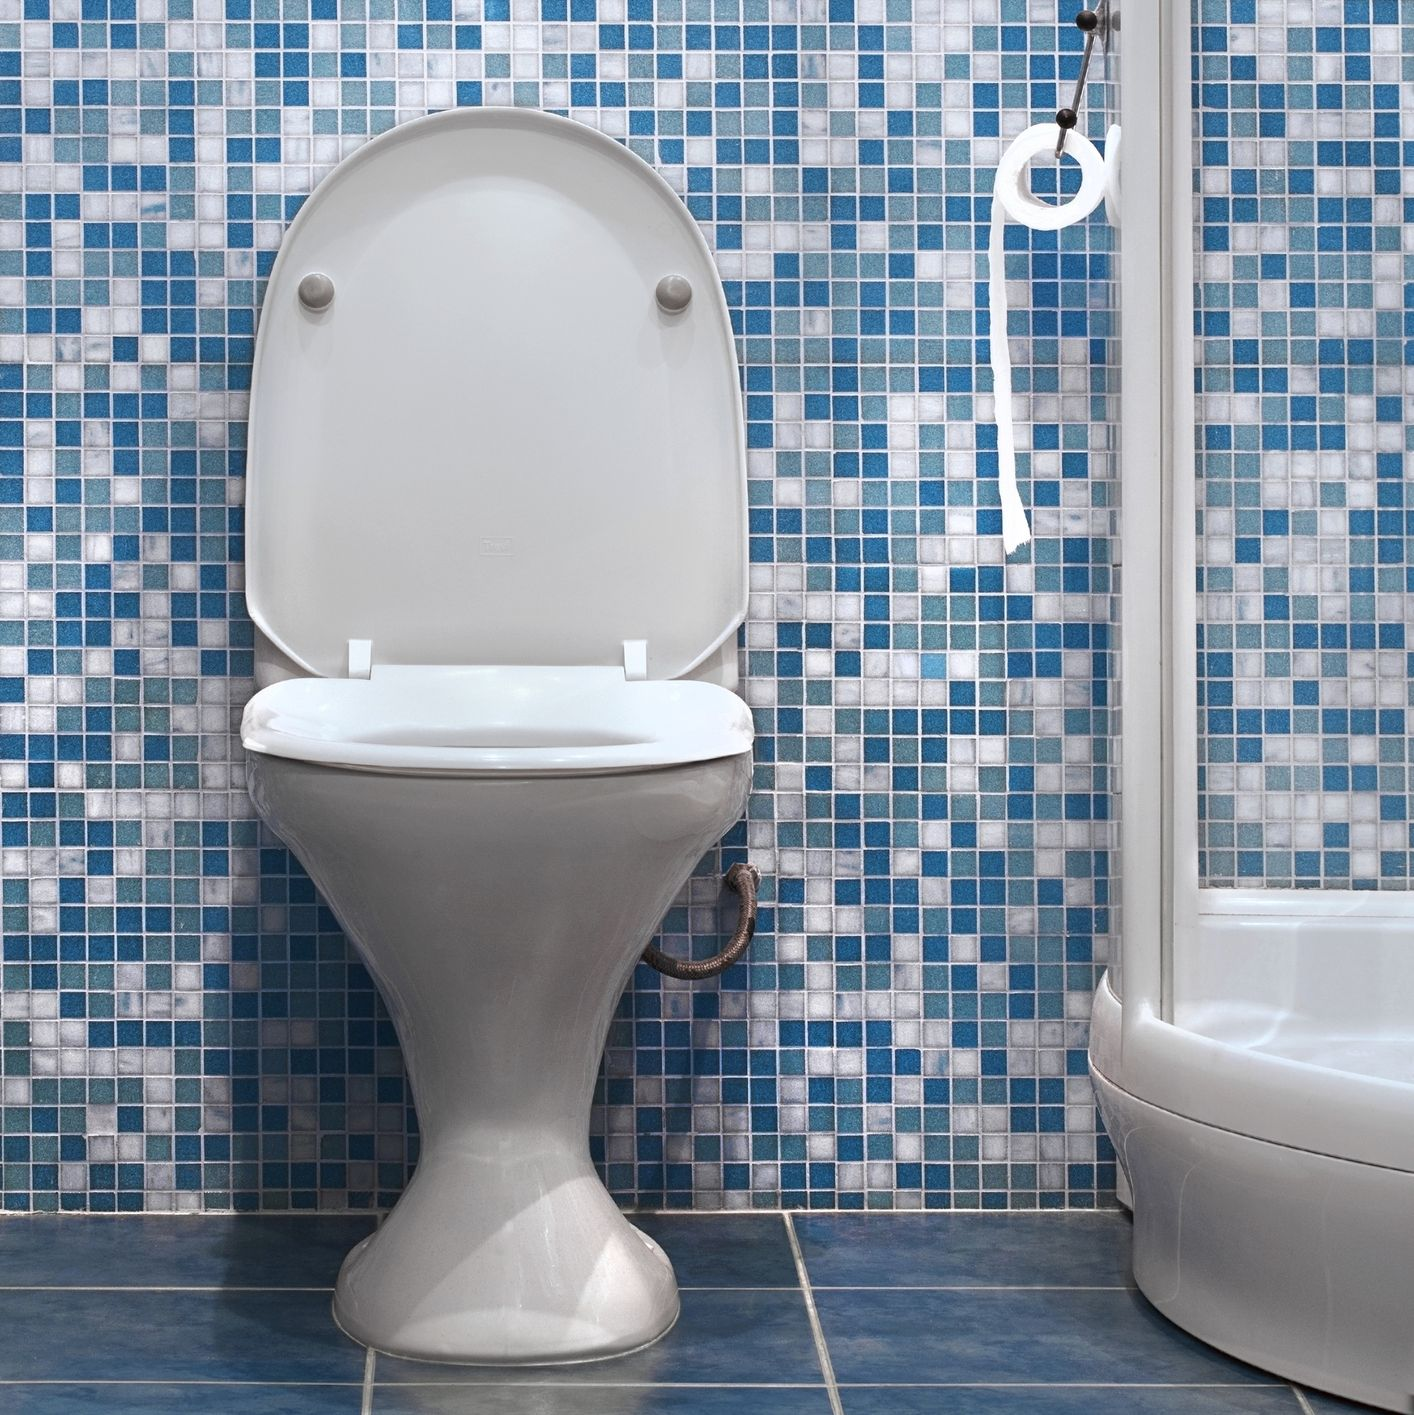 Banish Bathroom Smells Forever With LooLoo, a Hands-Free Toilet Freshener